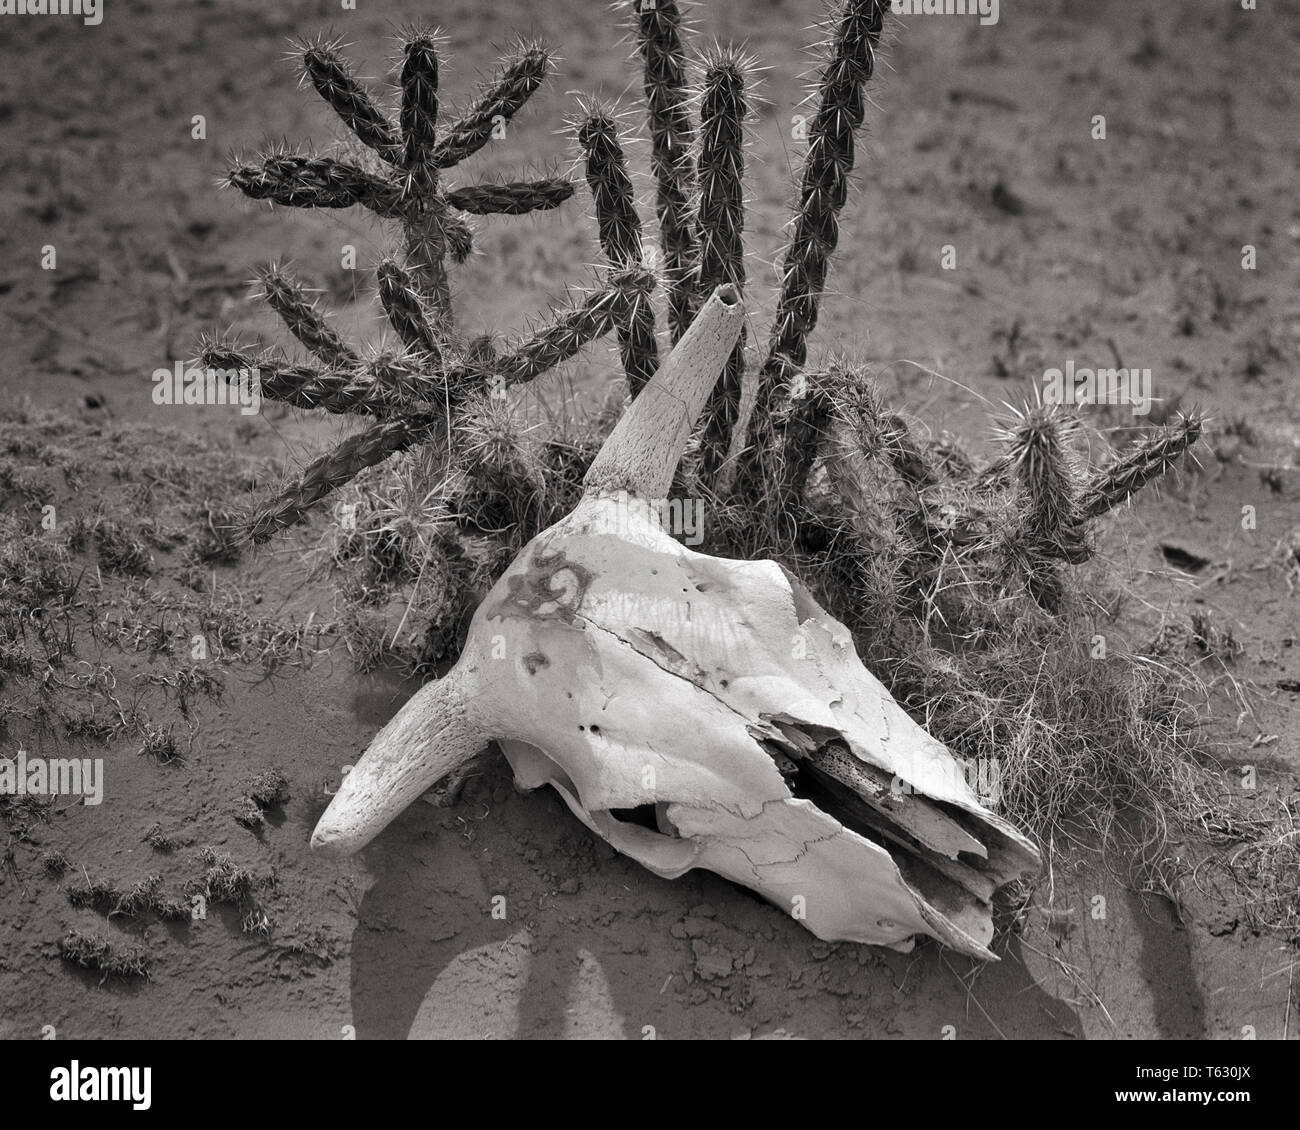 DRIED BLEACHED SKULL OF STEER LYING IN DIRT NEXT TO DESERT CACTUS - s4125 HAR001 HARS CONCEPTS DROUGHT BLACK AND WHITE HAR001 OLD FASHIONED REPRESENTATION SOUTHWESTERN - Stock Image